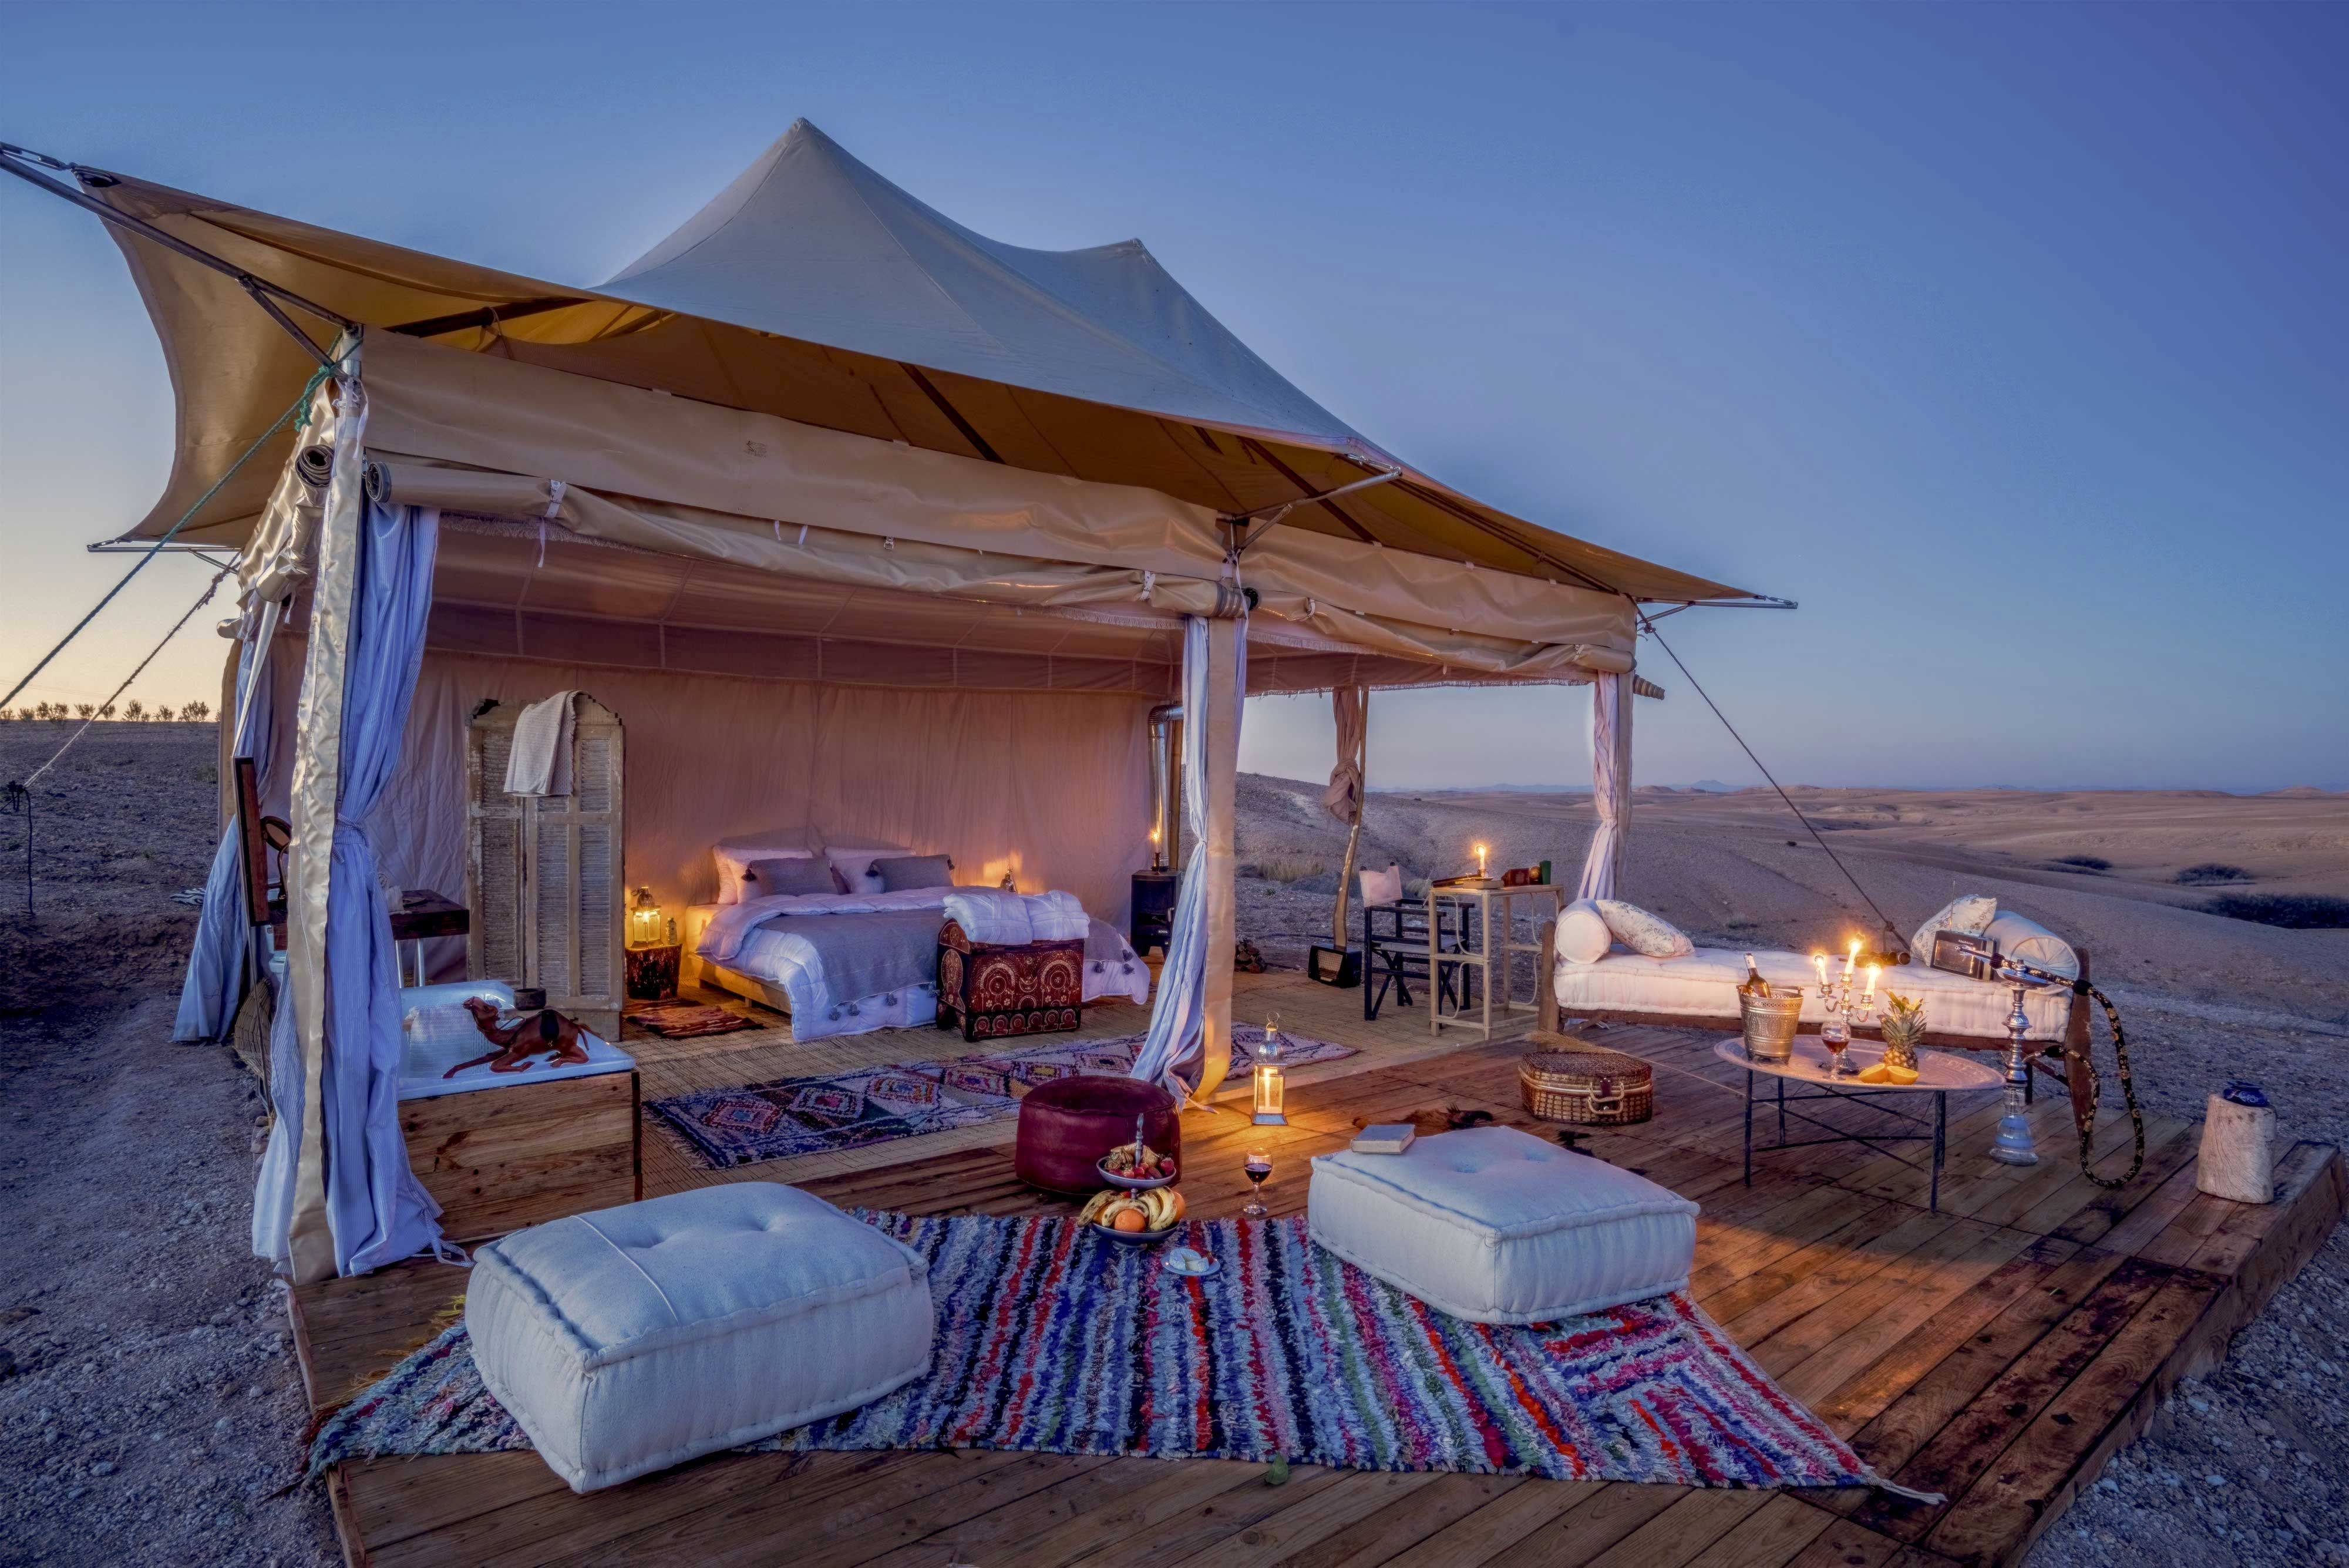 Embark On The Adventure Of A Lifetime And Stay In An Enchanting Desert Tent In The Agafay Desert Of Morocco Book Your Stay He Luxury Tents Tent Luxury Camping